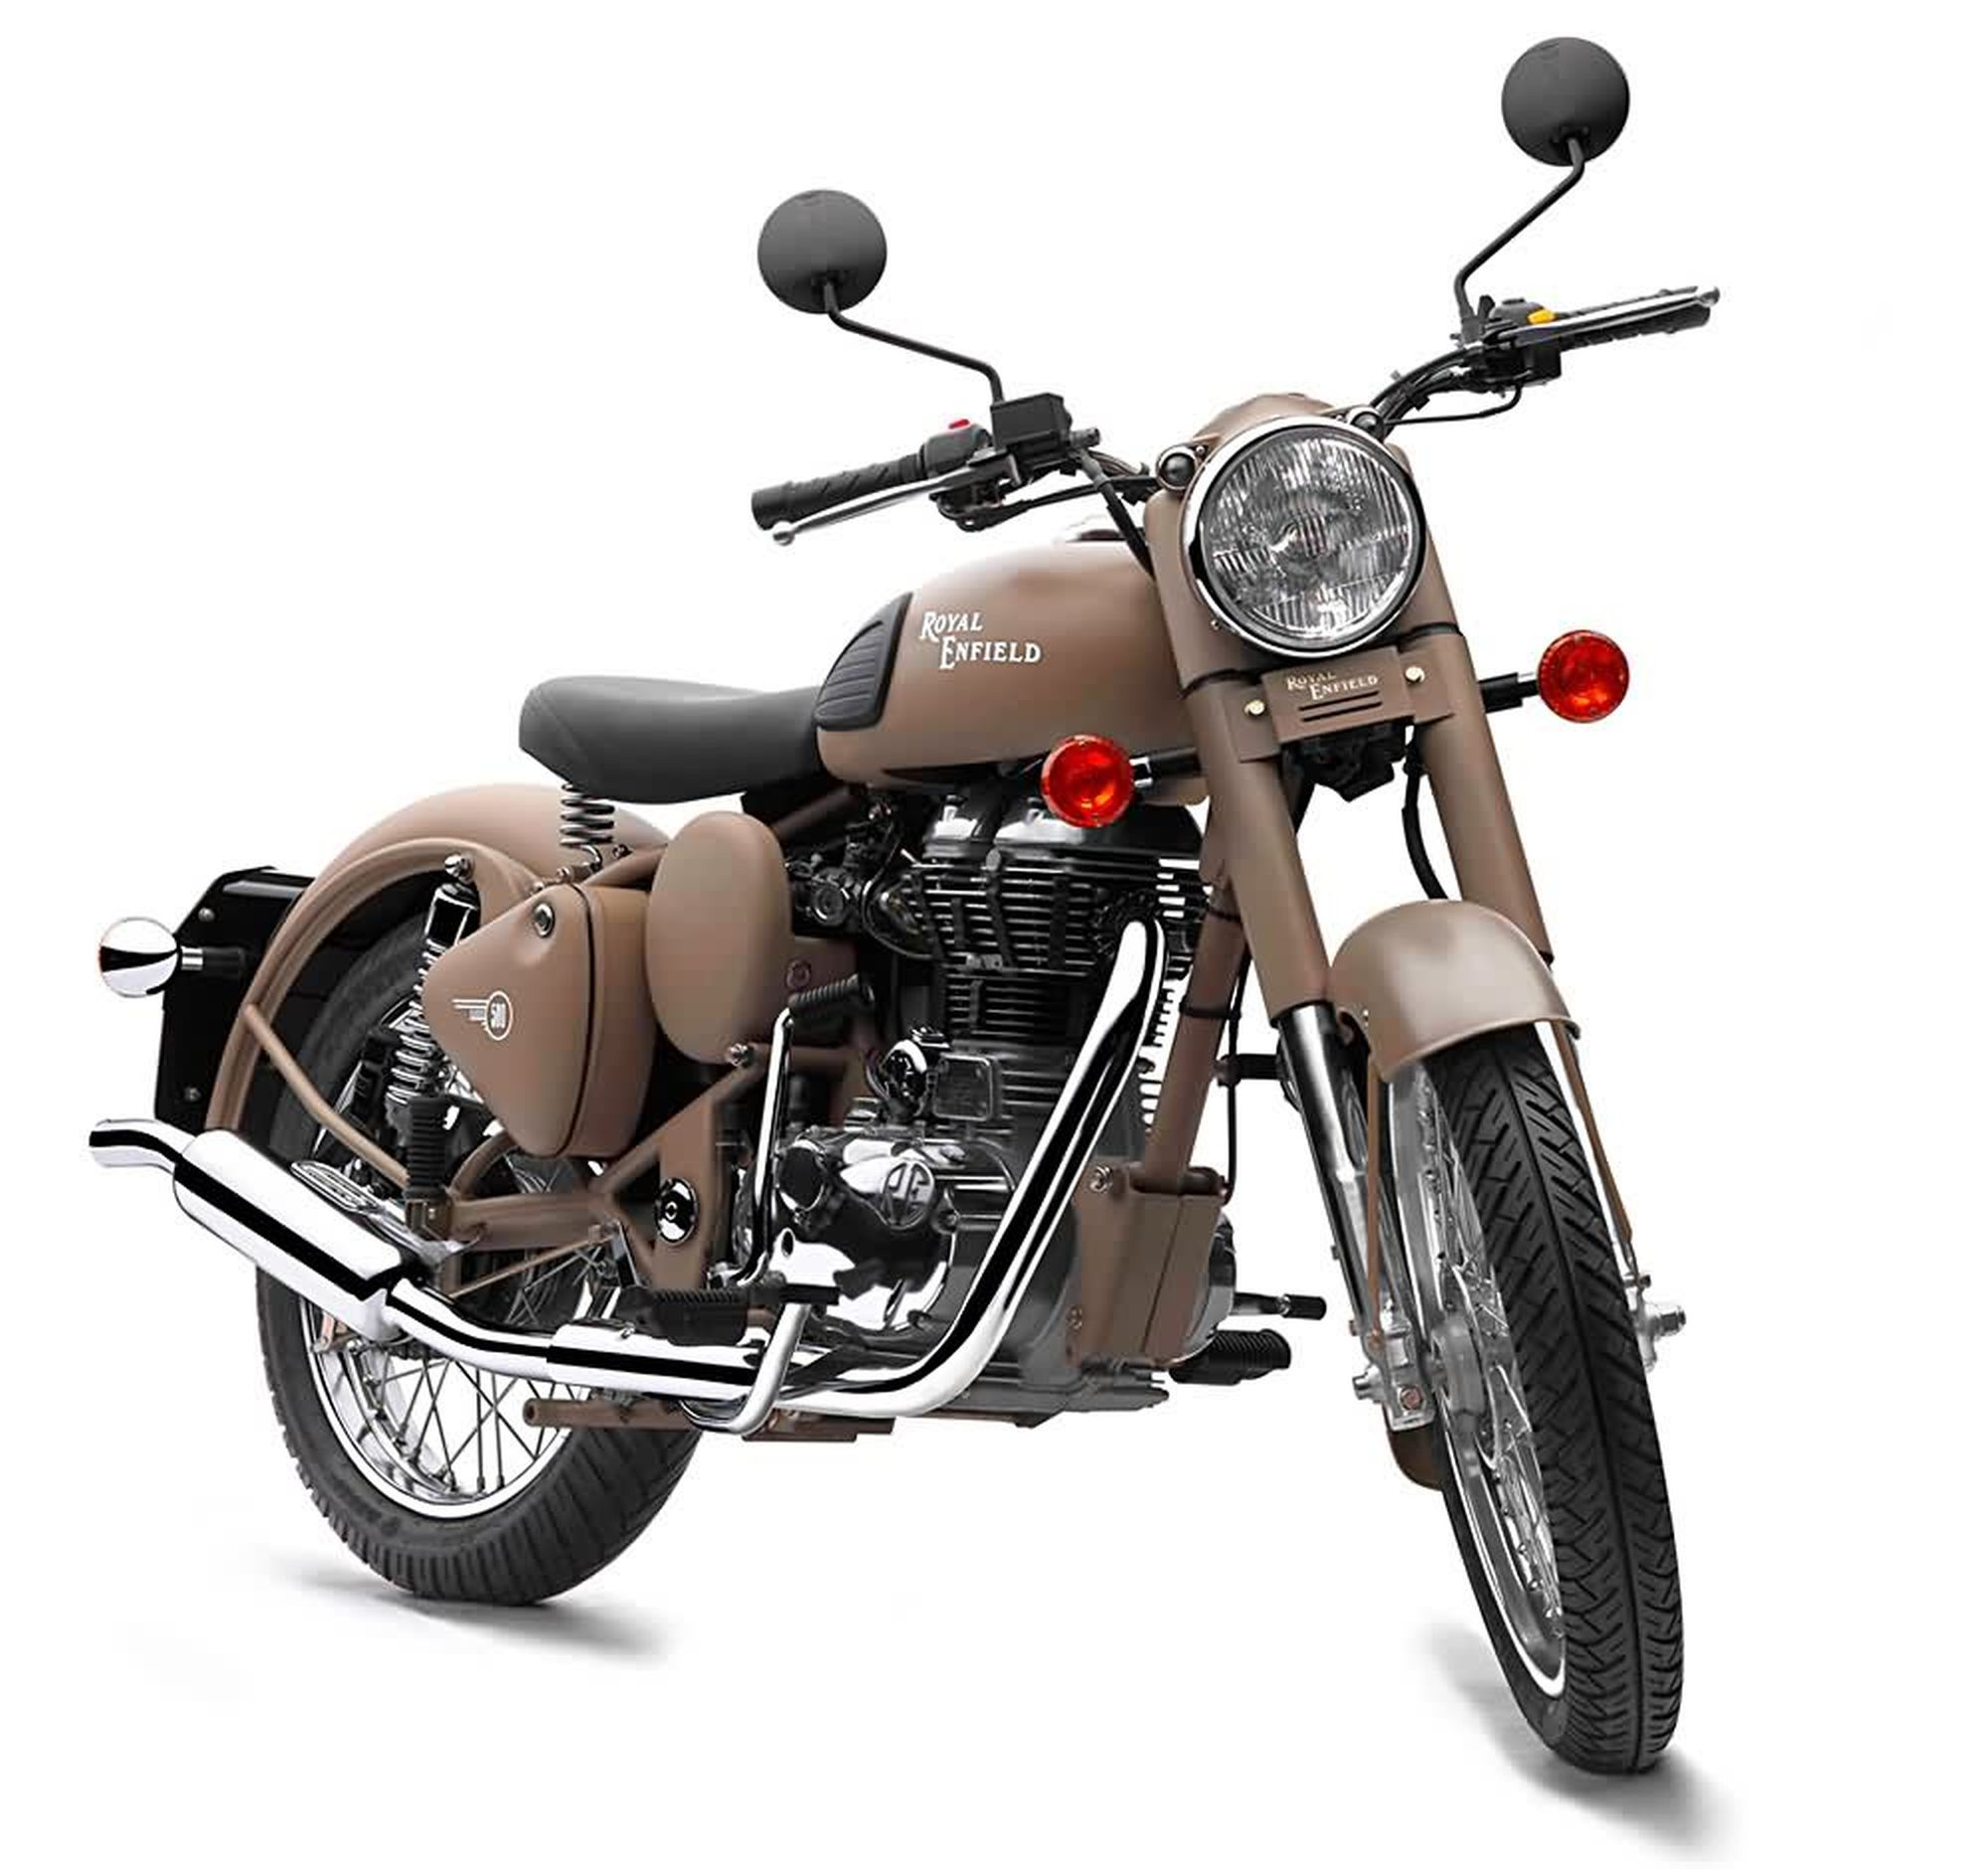 gebrauchte royal enfield bullet 500 classic efi military motorr der kaufen. Black Bedroom Furniture Sets. Home Design Ideas